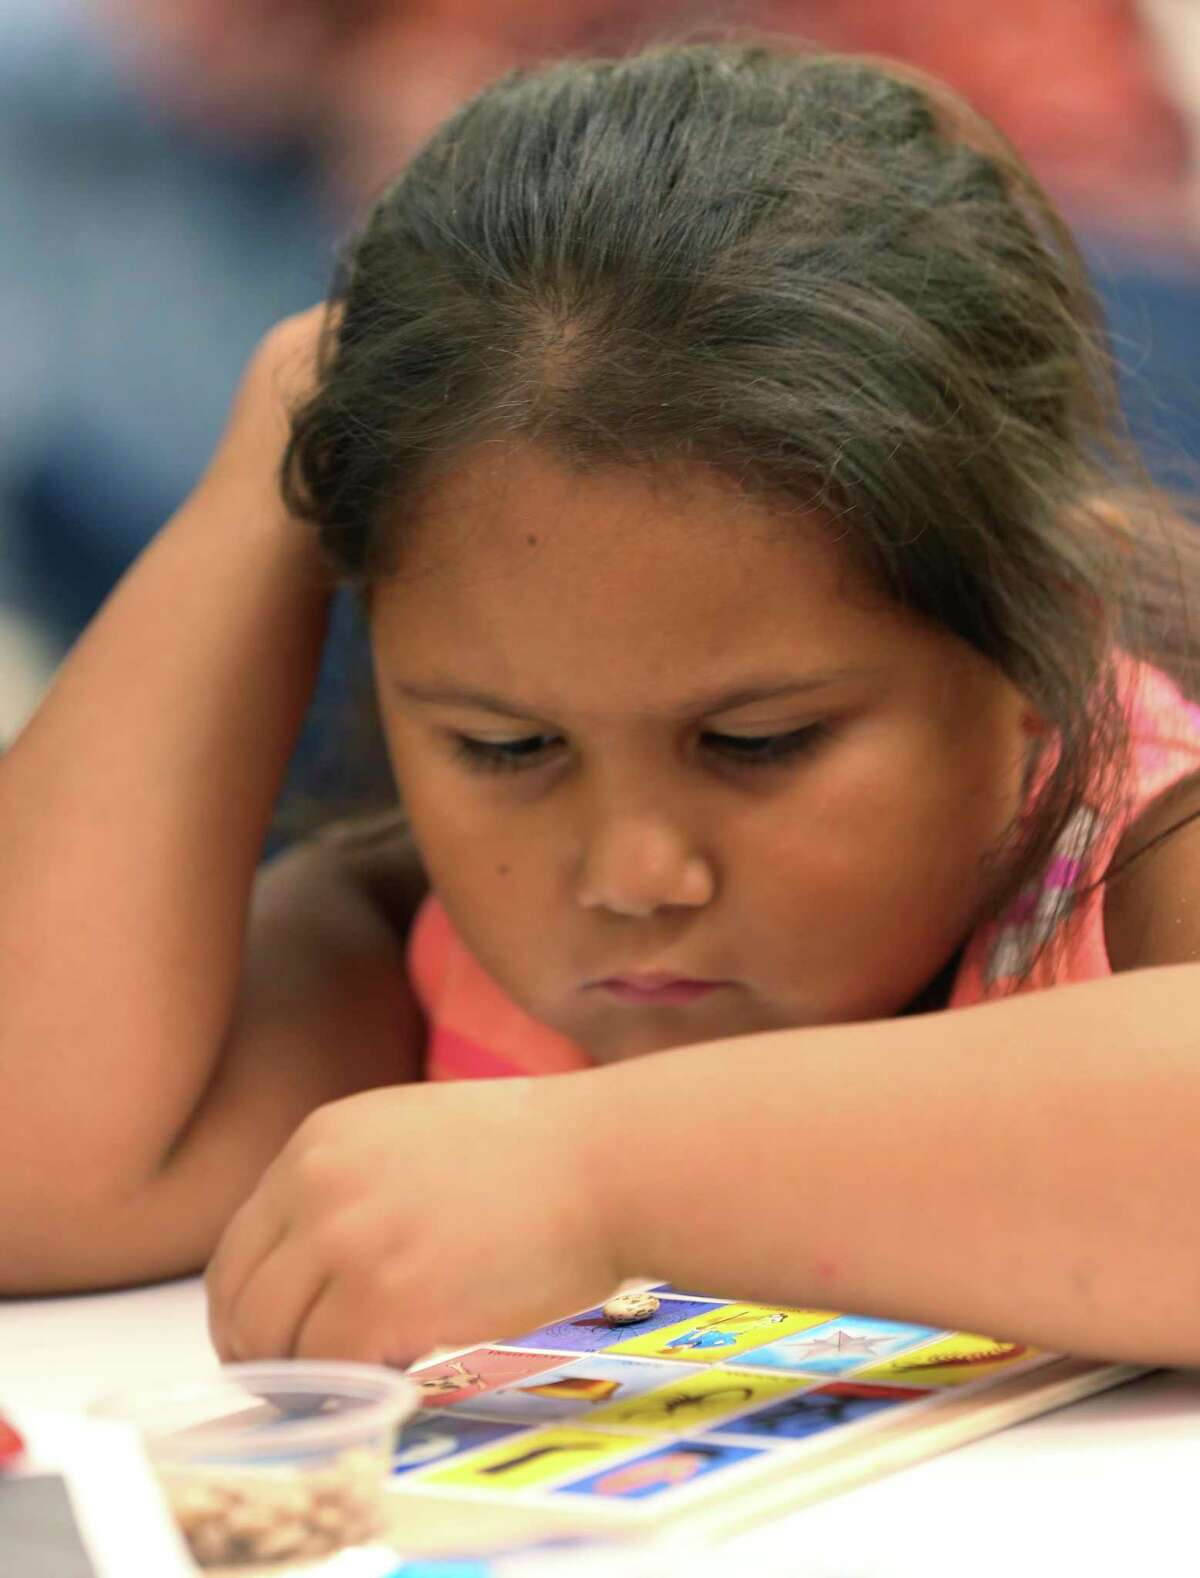 Anastasia Garcia, 6, concentrates on her card during a game of lotería at the San Antonio Central Library on Sunday for the La Lote event.